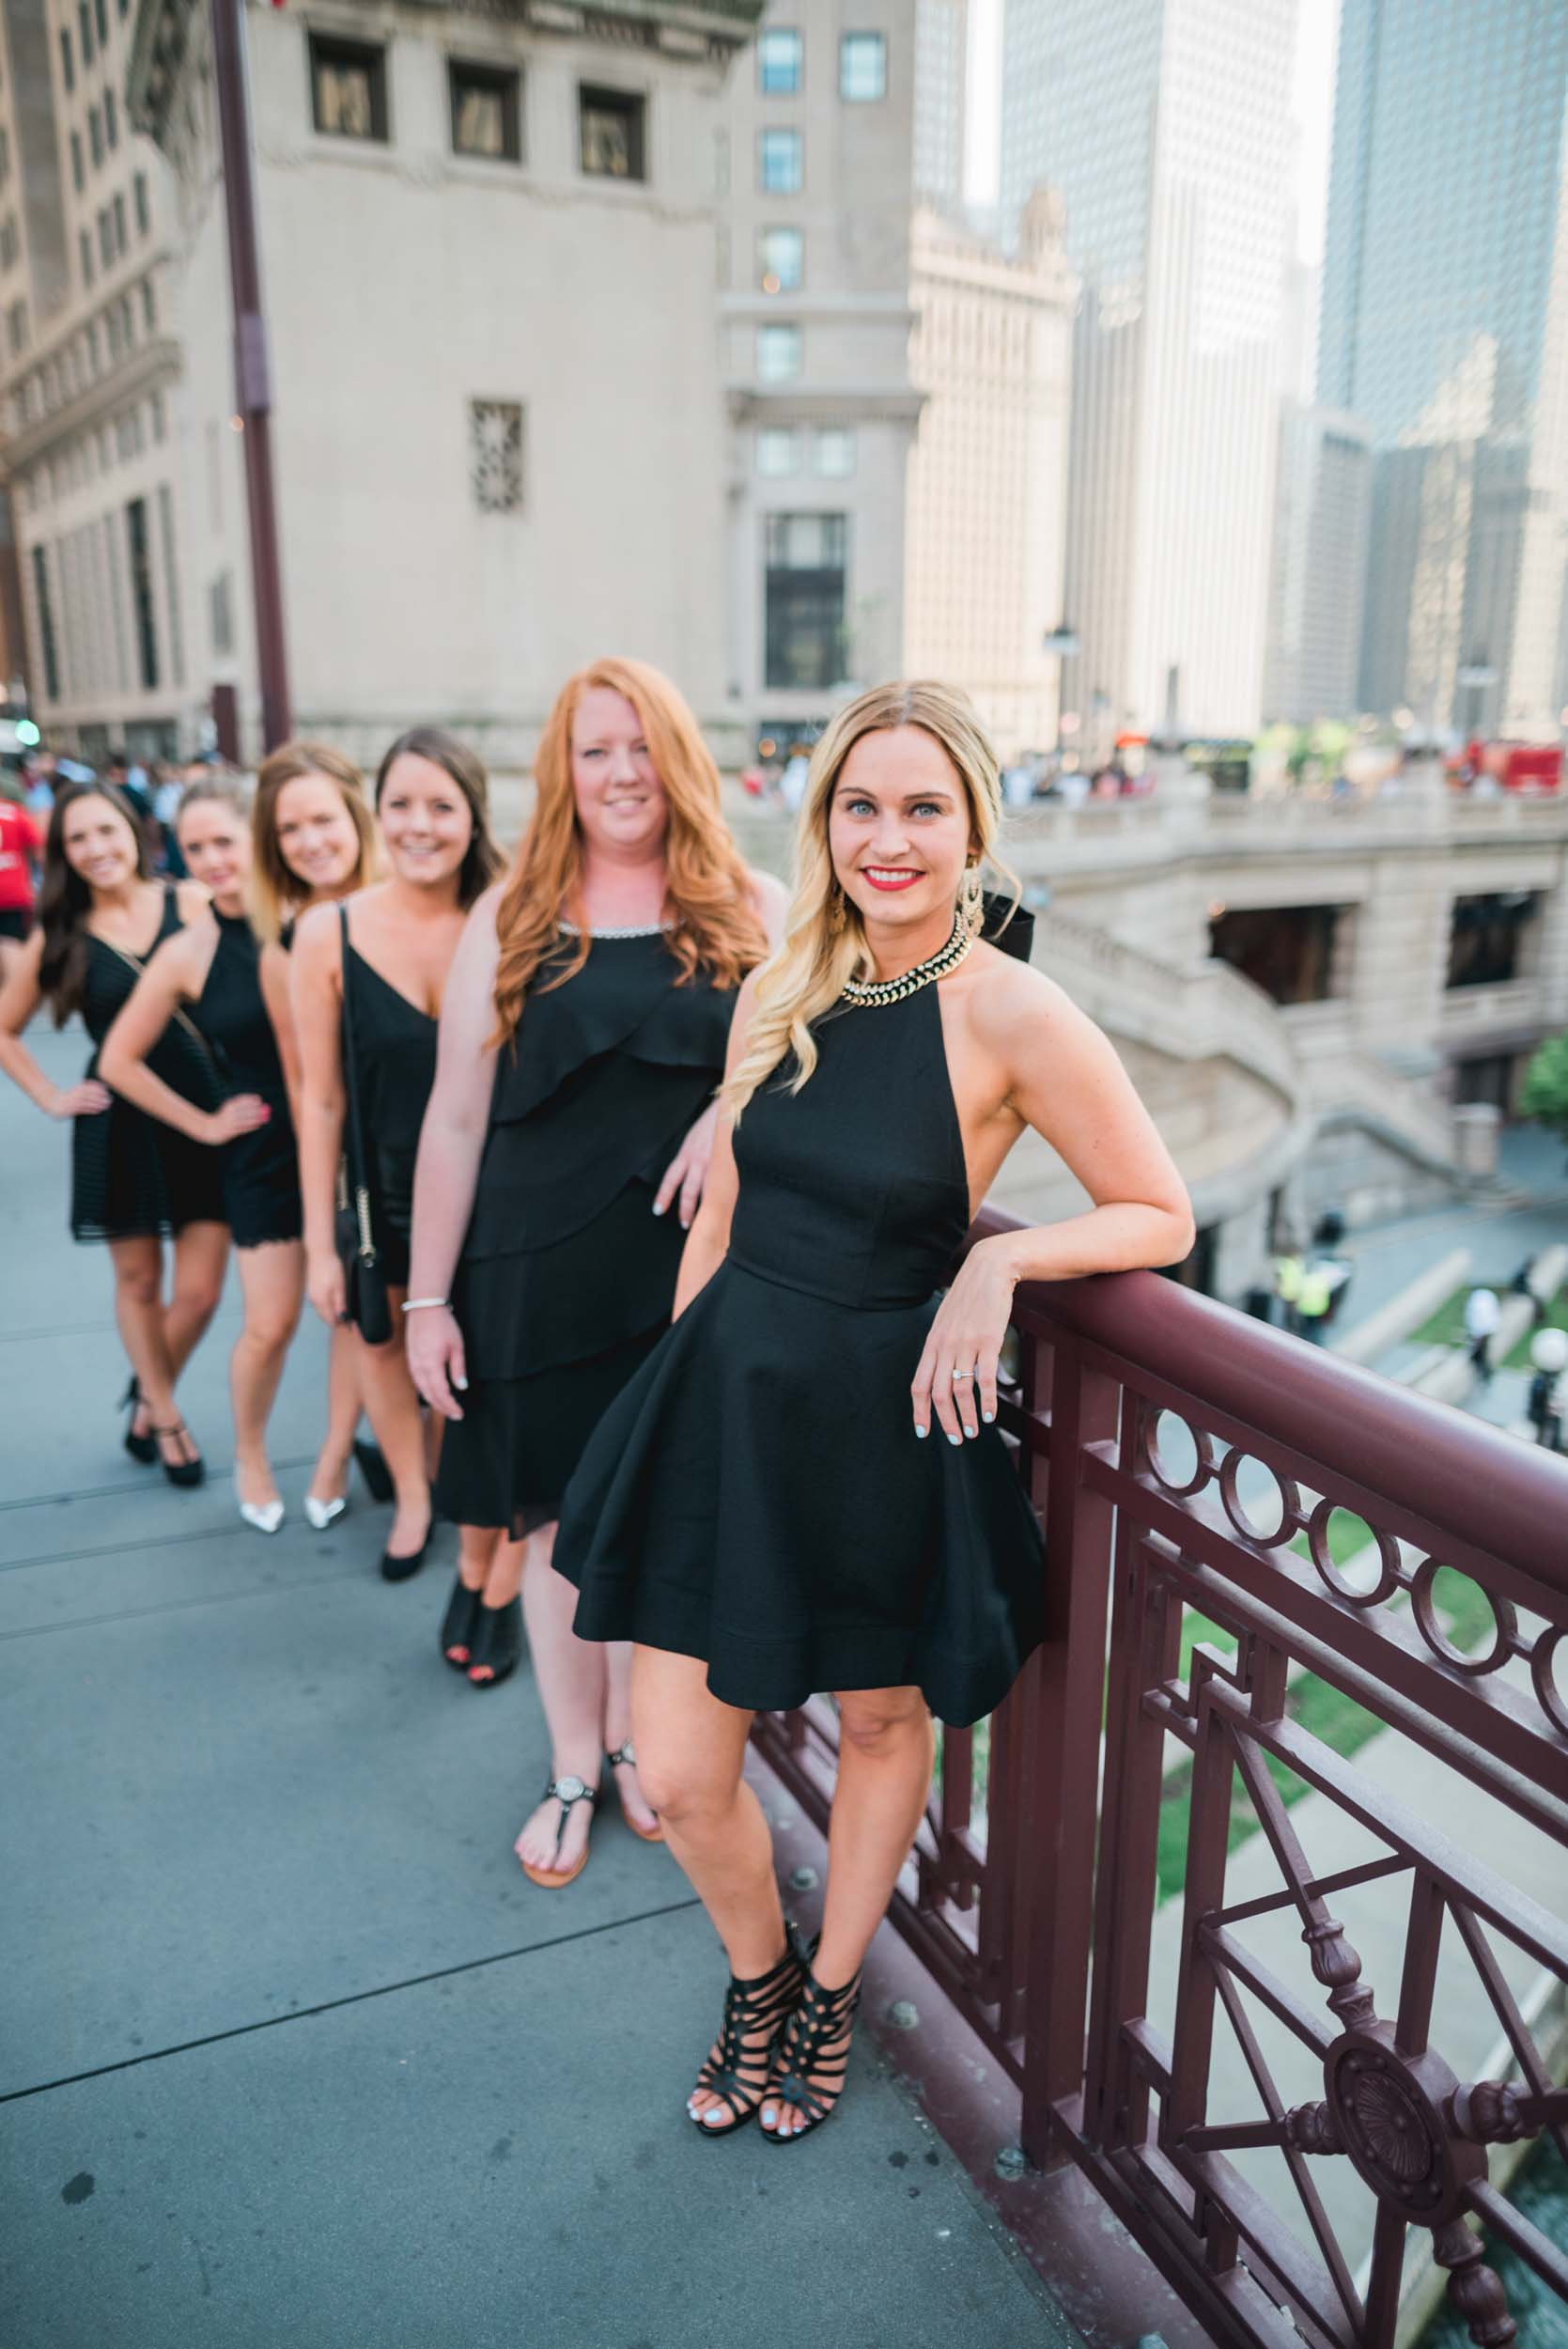 Six female friends on a bachelorette trip together standing one behind another on a bridge in Chicago, USA